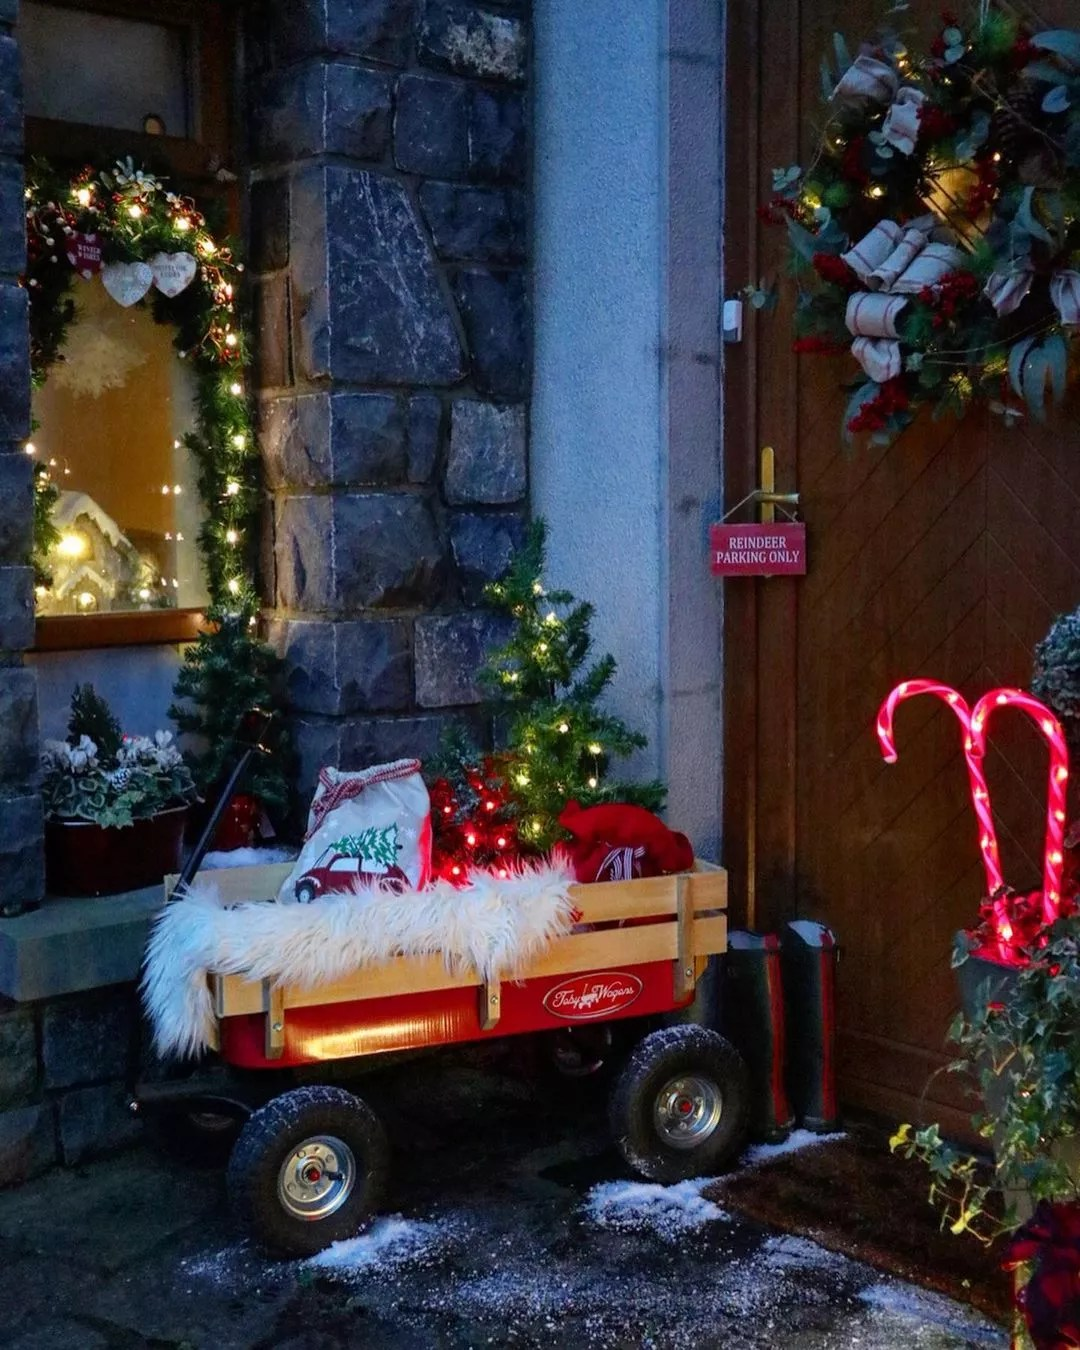 A small red and wooden wagon sits on the front porch holding a mini, lit Christmas tree, cotton material, and other various holiday decor. Photo by Instagram user @my_irish_home.